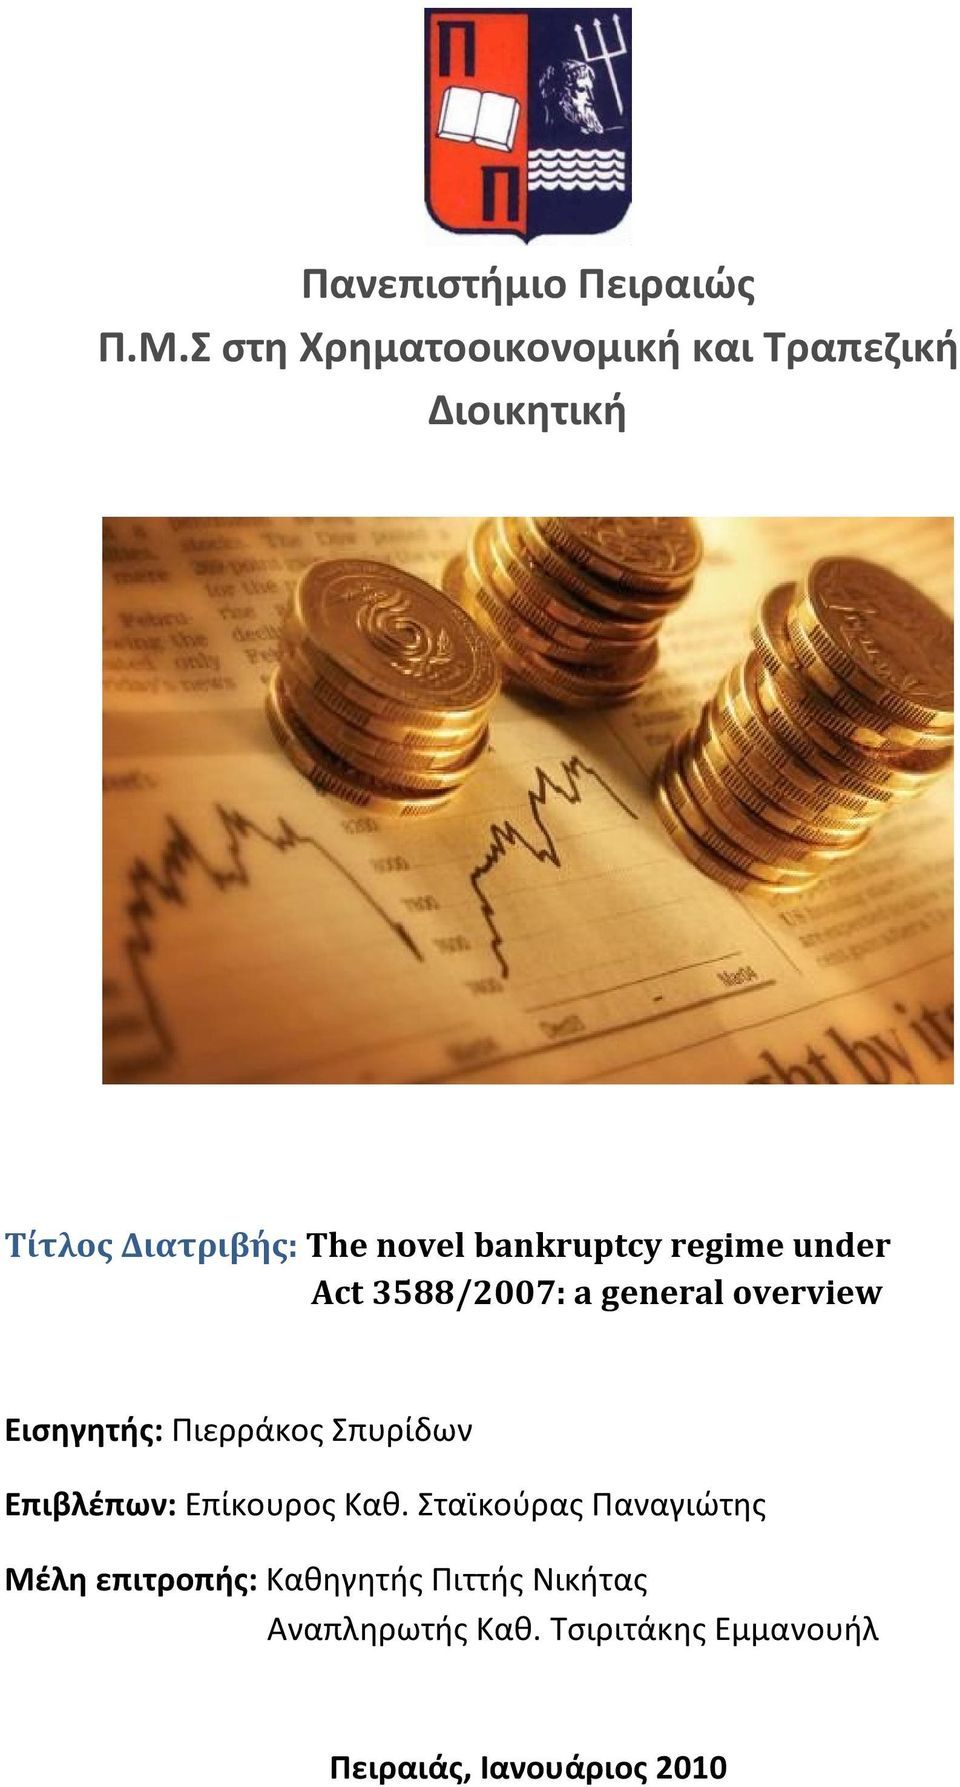 bankruptcy regime under Act 3588/2007: a general overview Εισηγητής: Πιερράκος